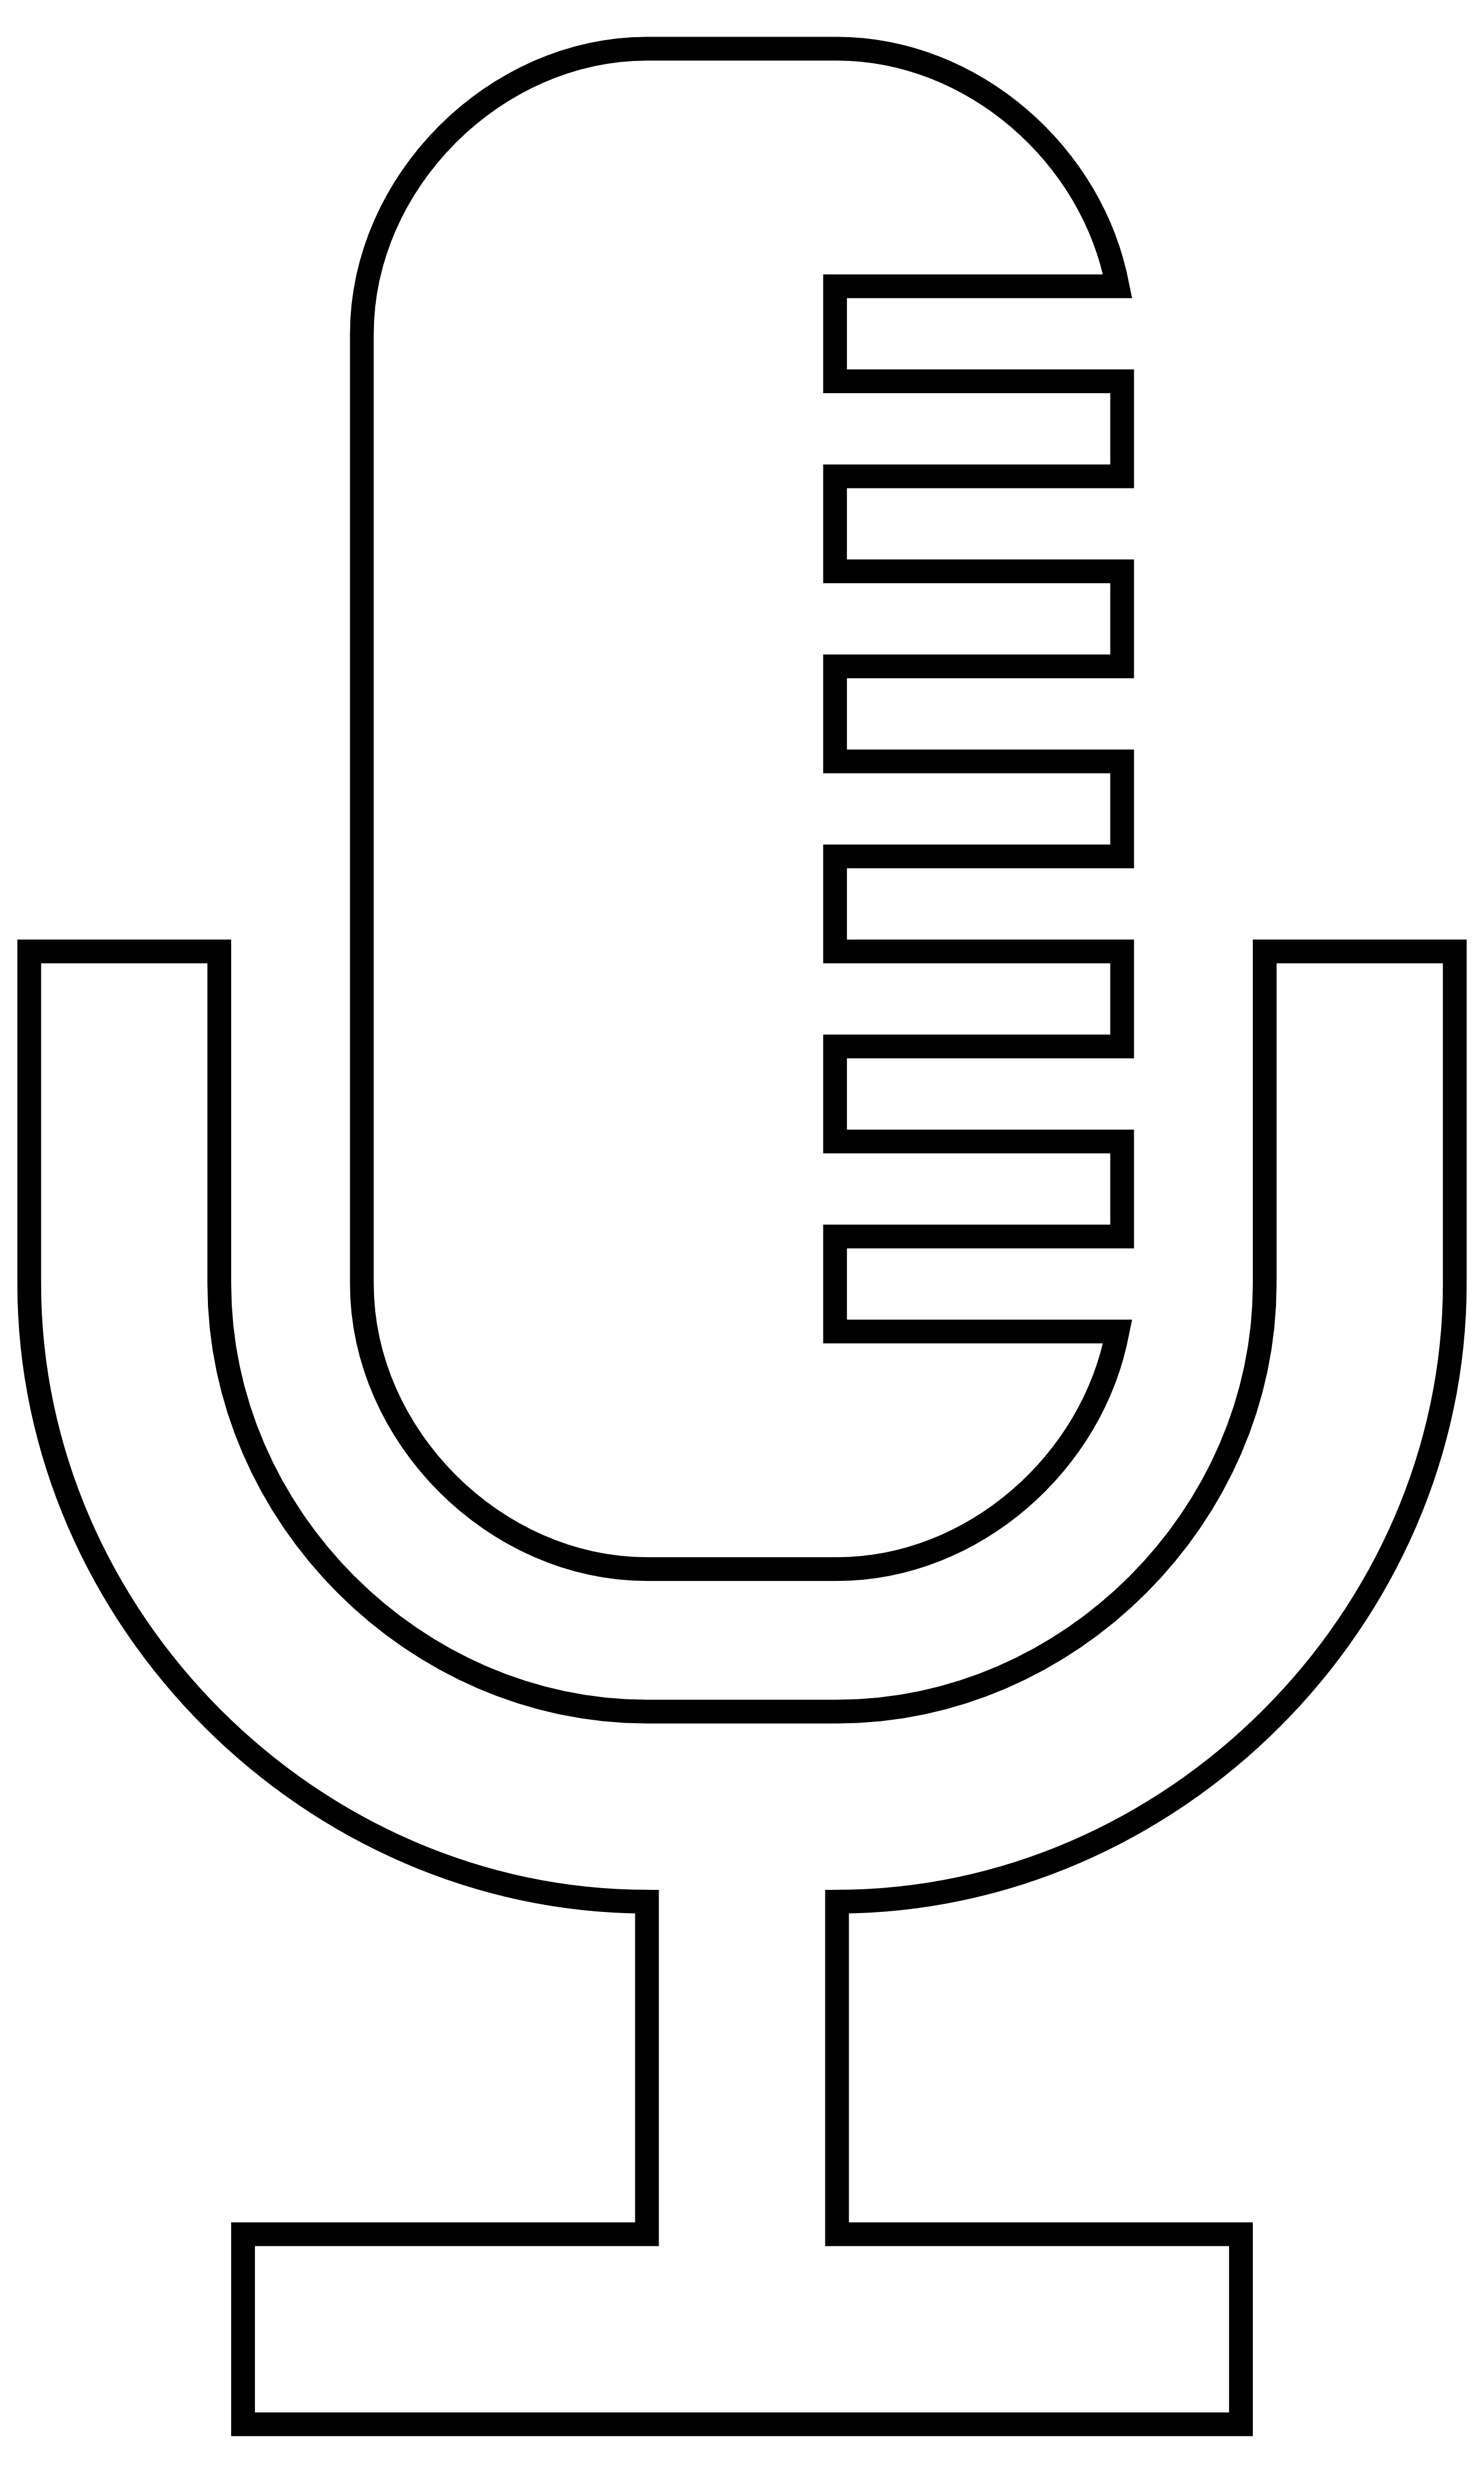 Microphone clipart at work #3